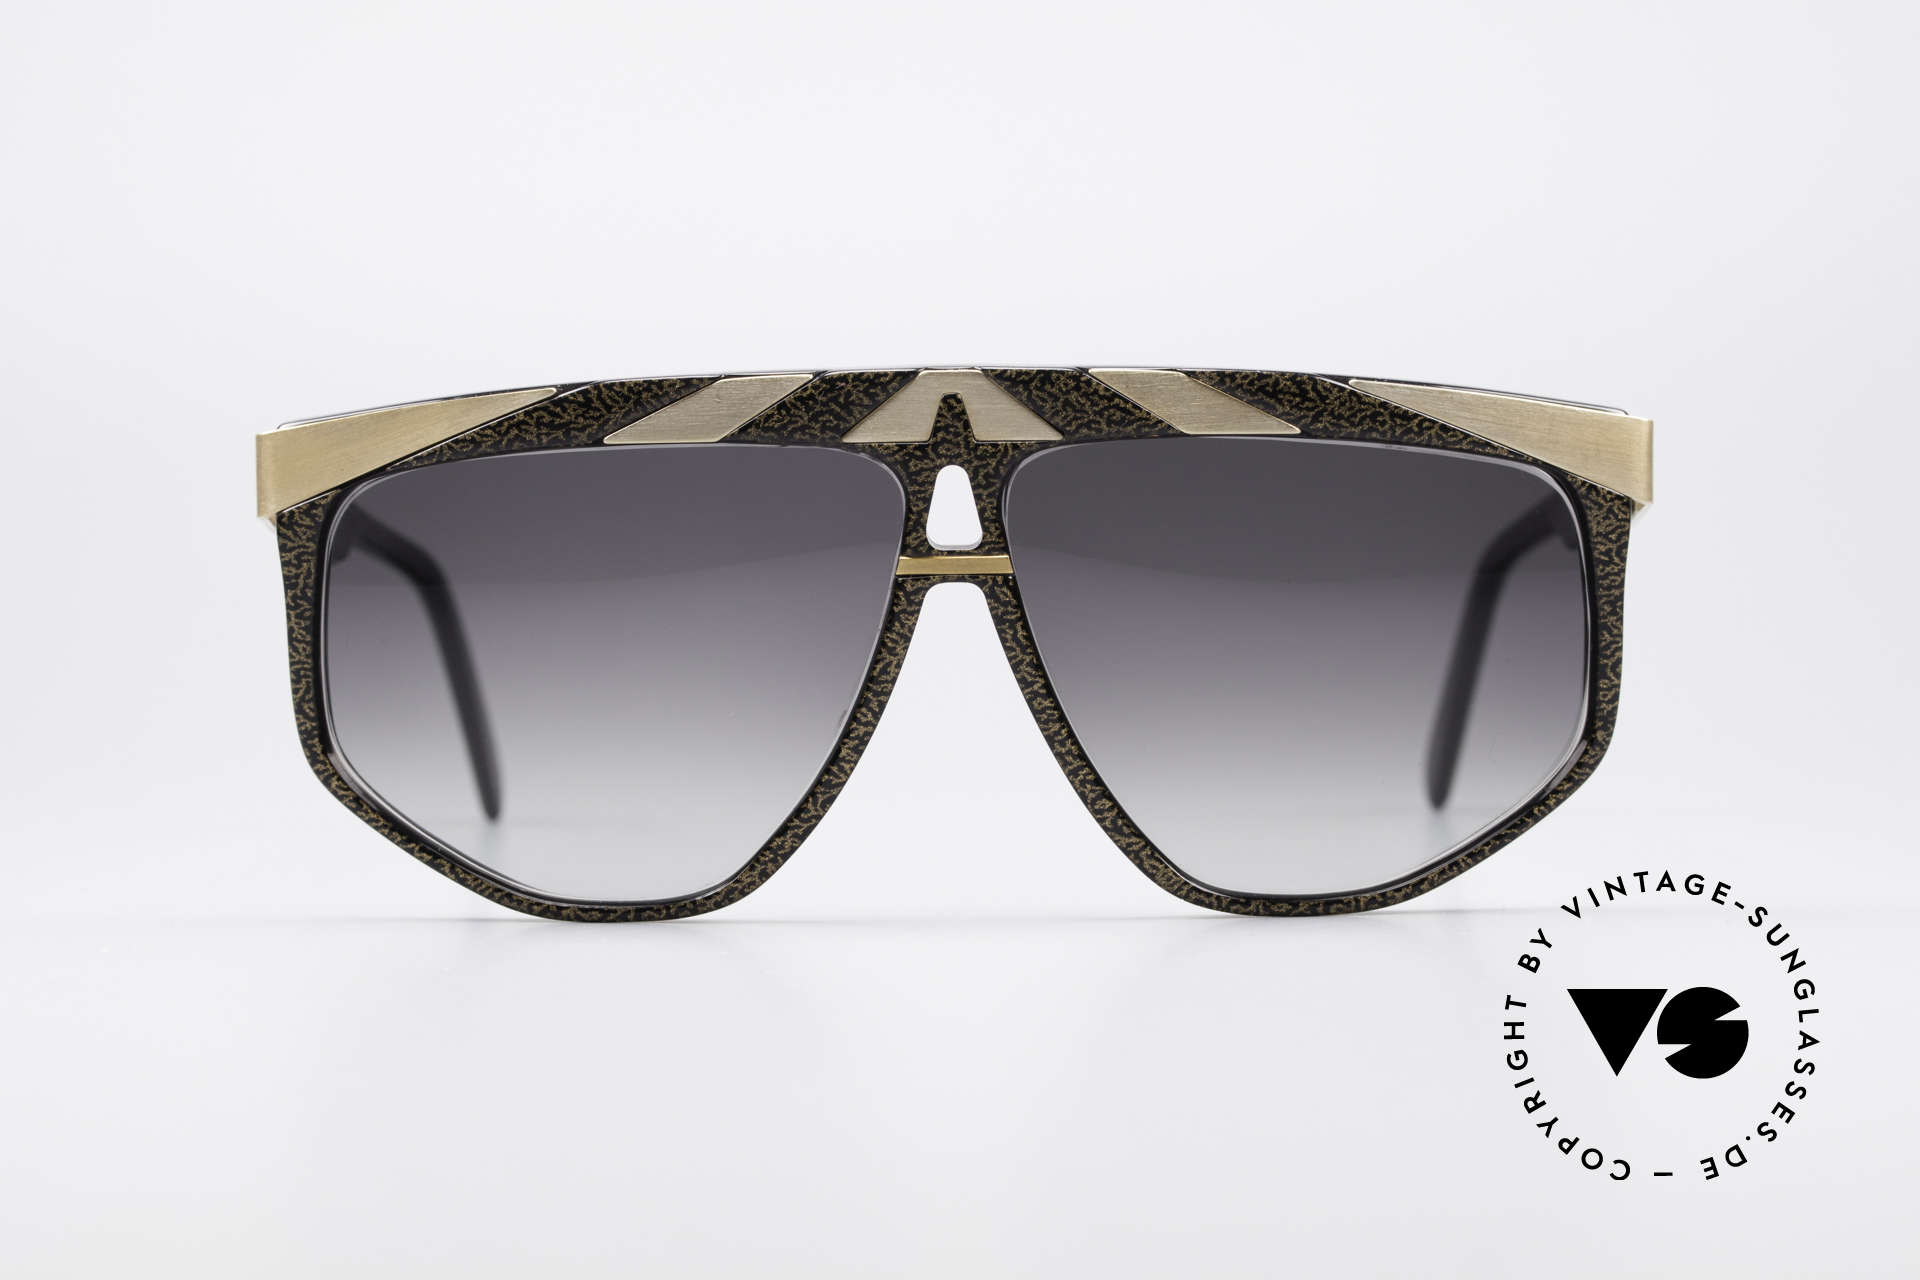 Alpina G82 No Retro Sunglasses Old 80's, conspicuous frame design with ornamenting details, Made for Men and Women